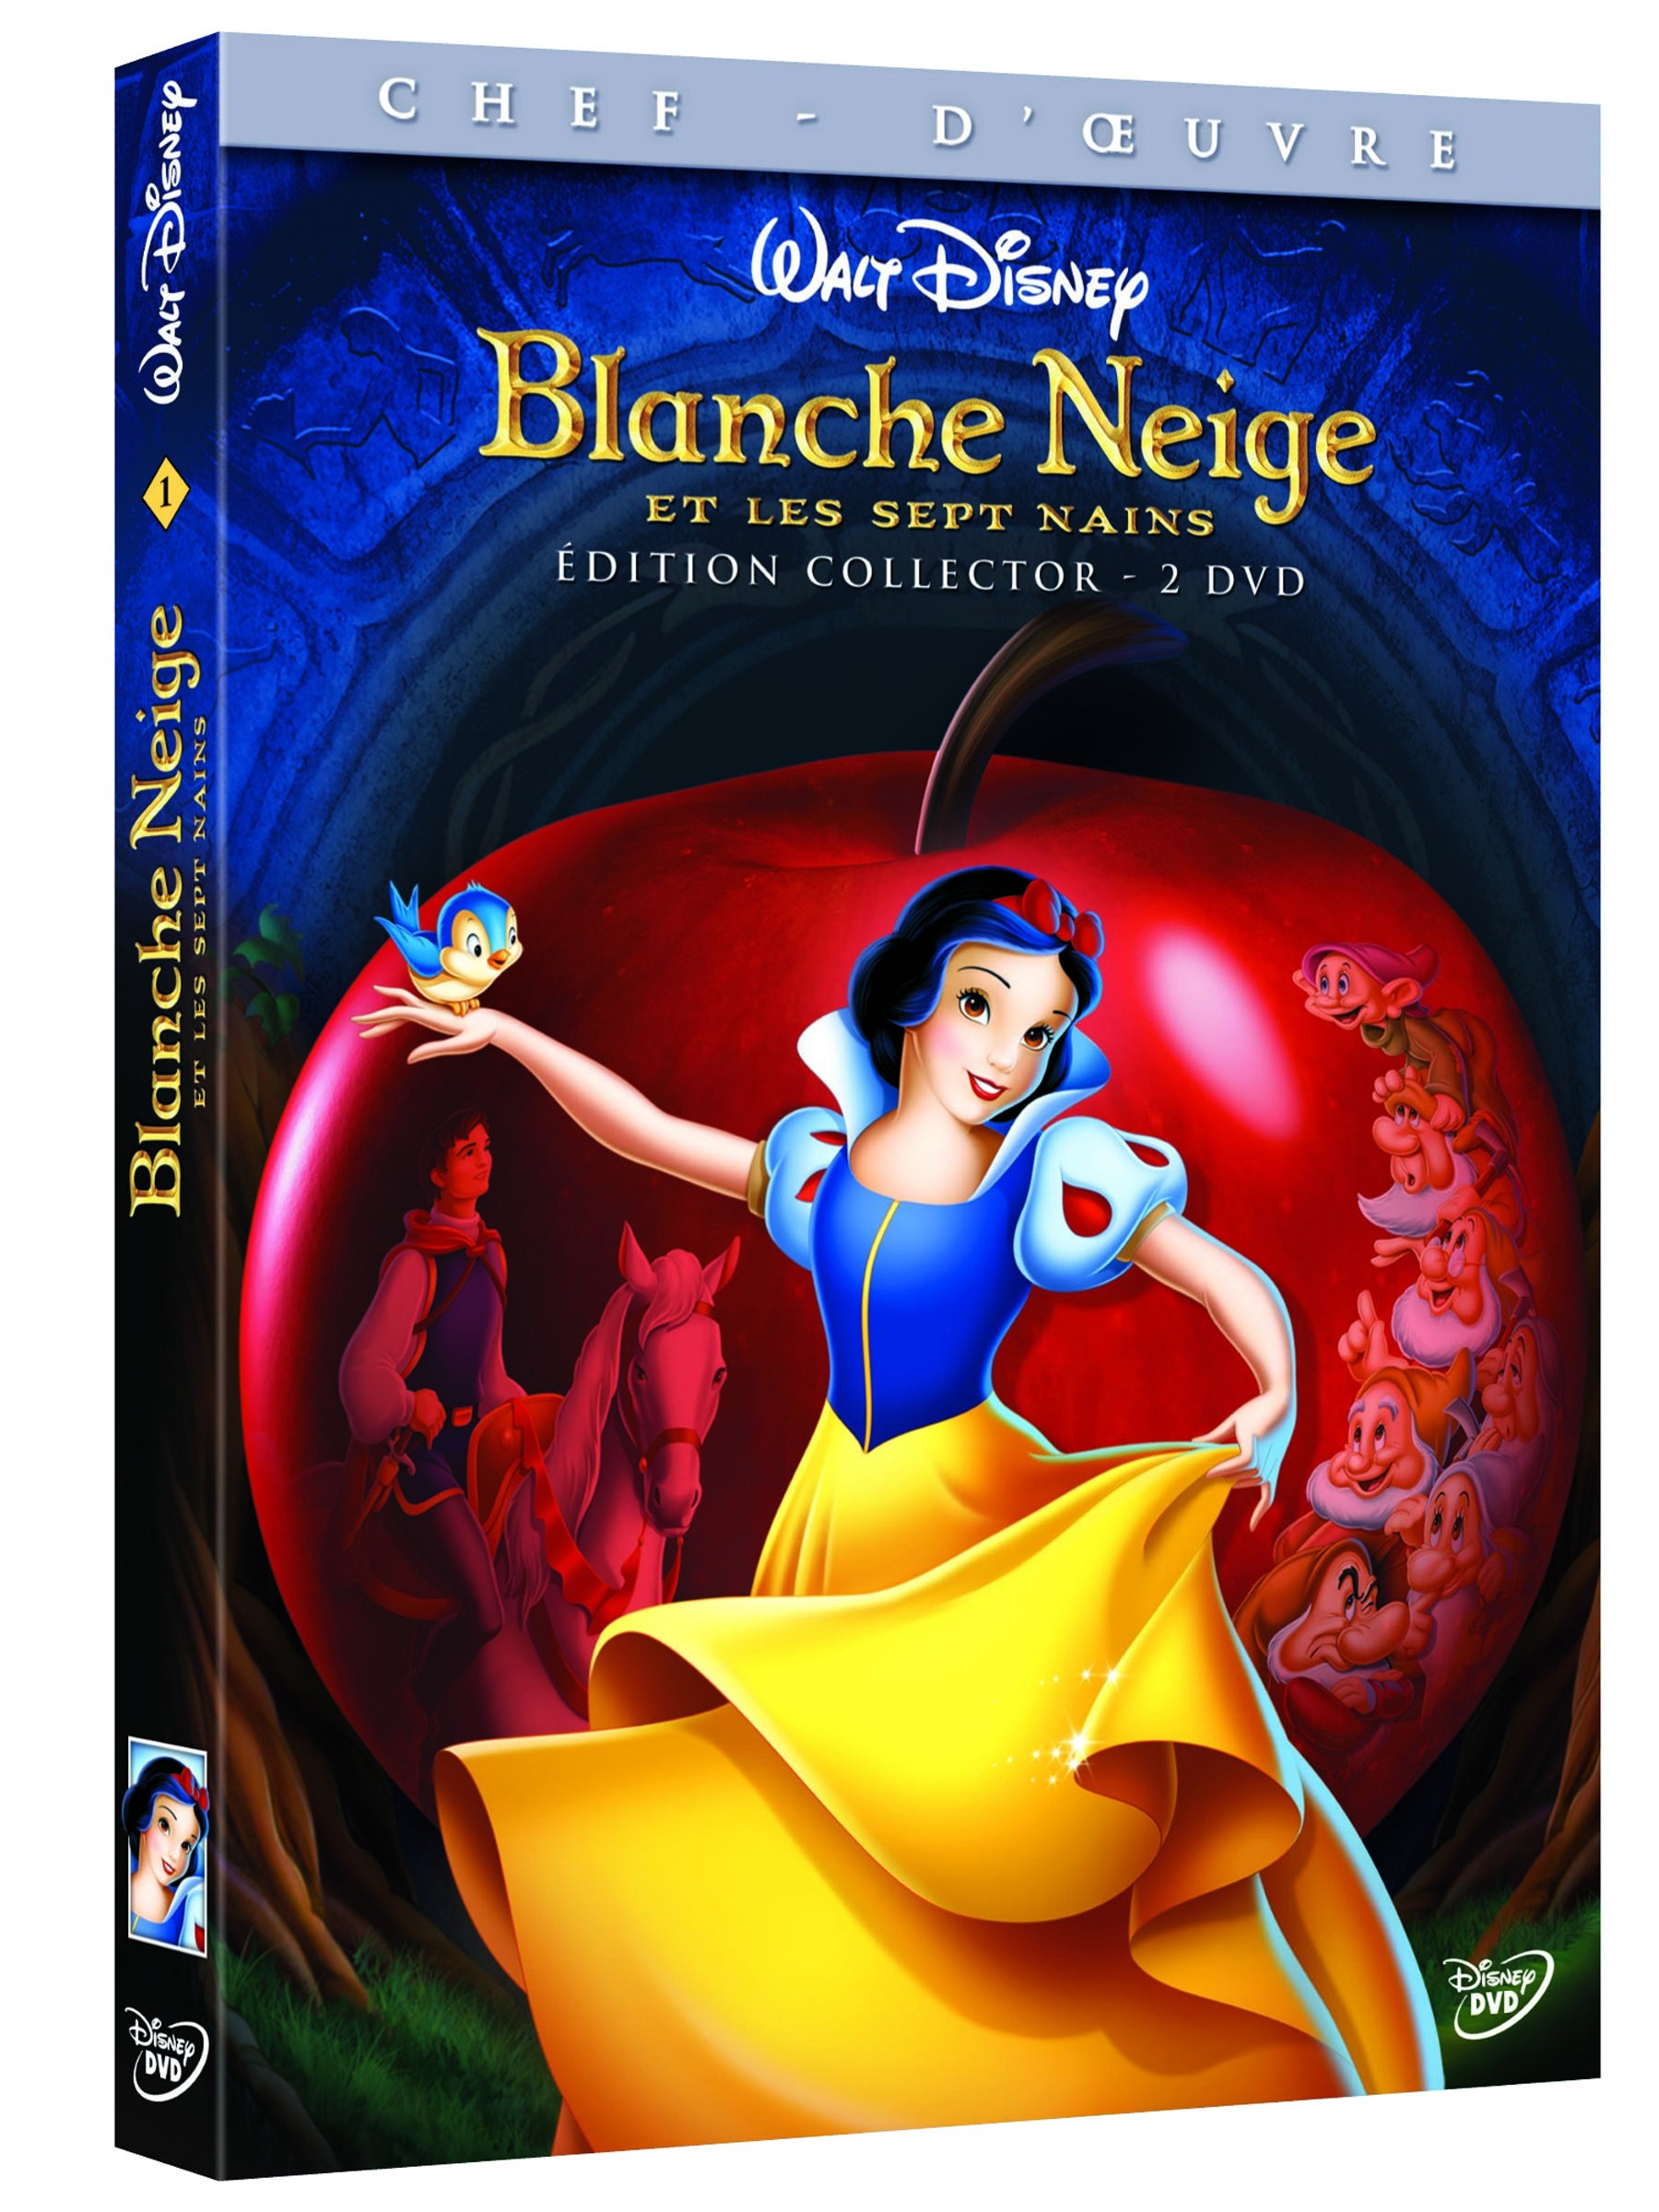 blanche neige et les 7 nains en dvd blu ray. Black Bedroom Furniture Sets. Home Design Ideas